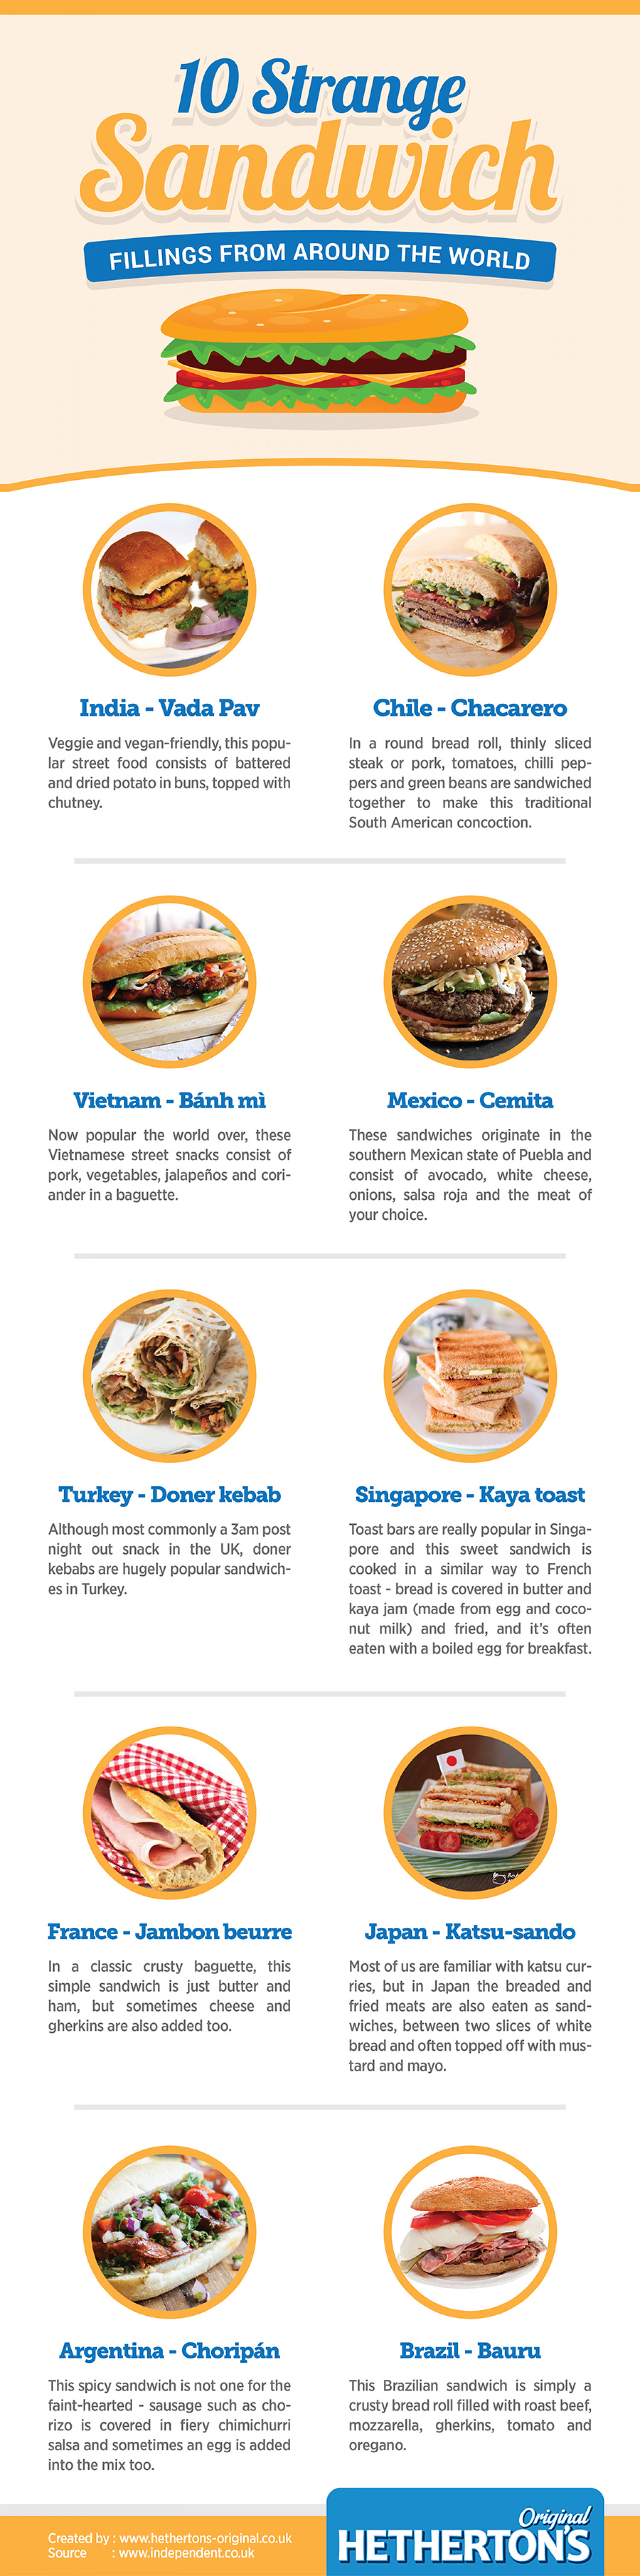 10 Strange Sandwich Fillings From Around the World